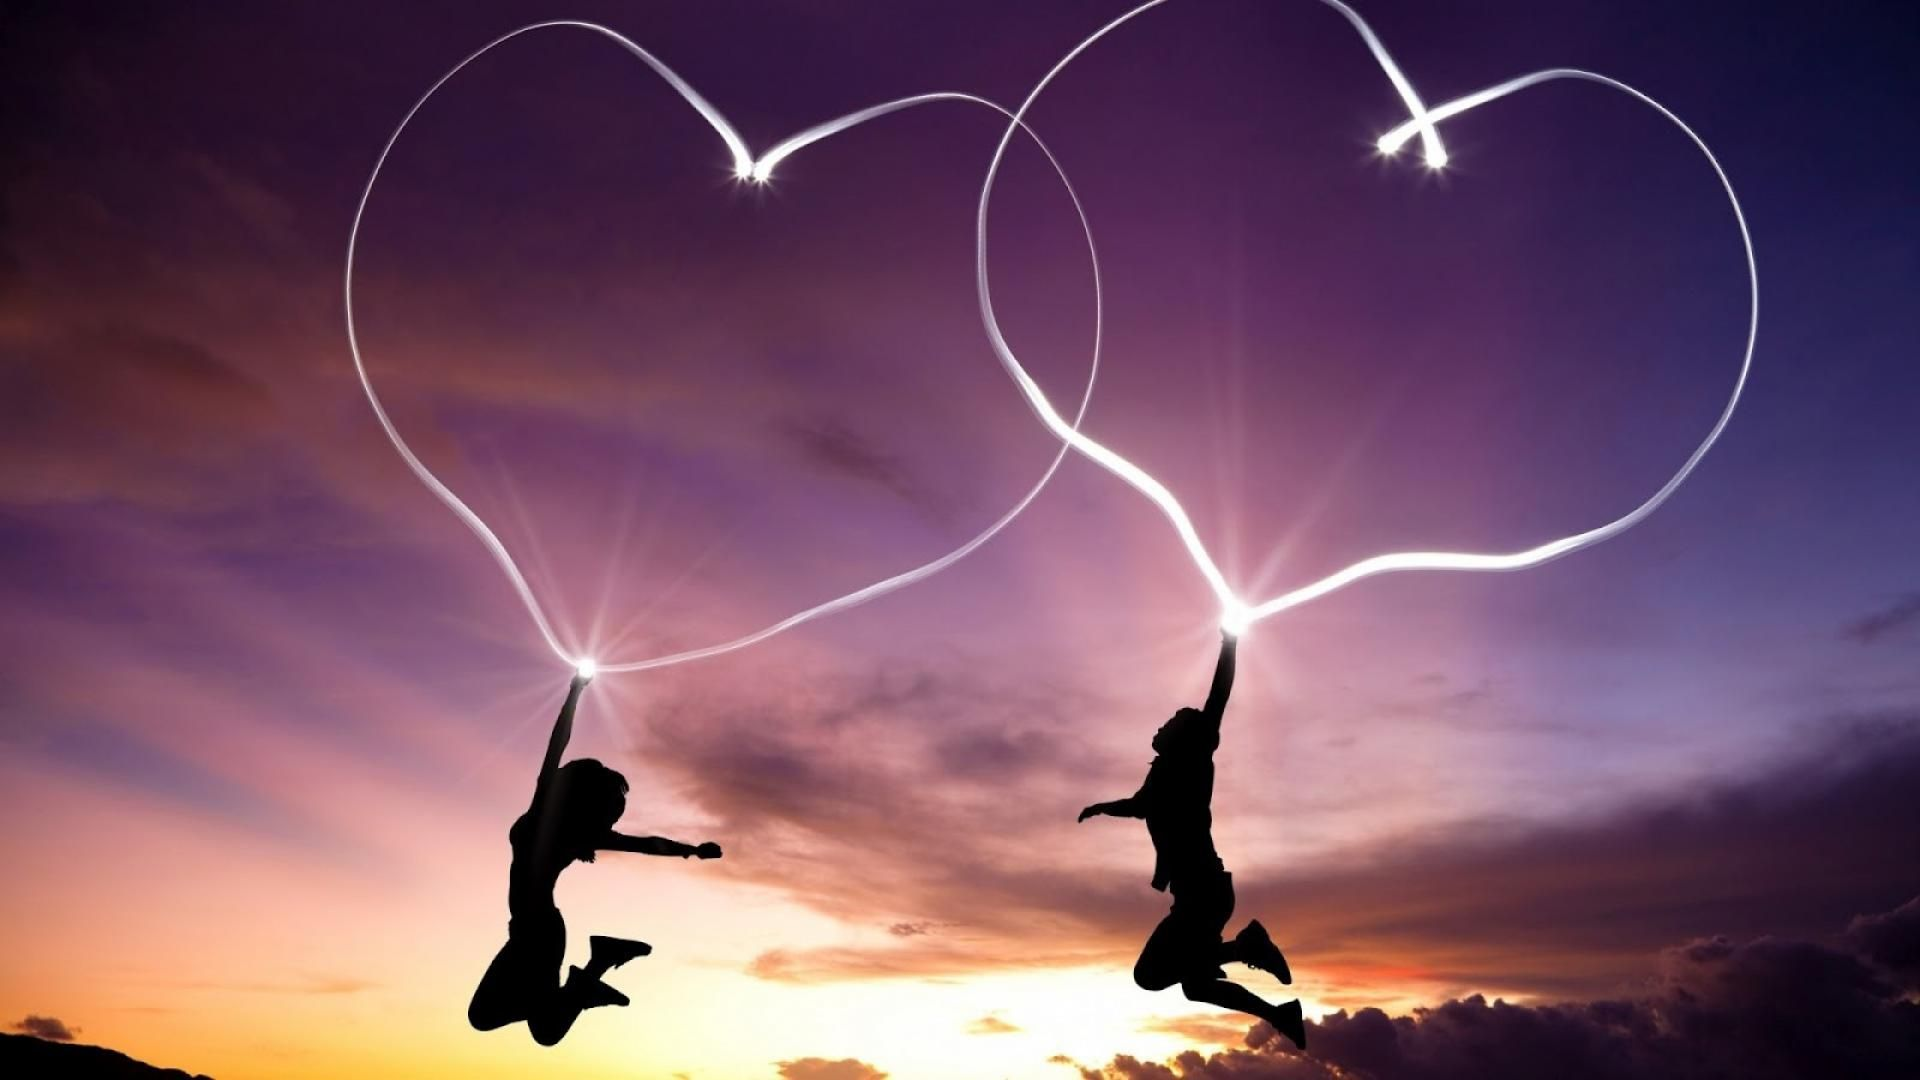 Romantic love wallpaper free stock photos download Free stock